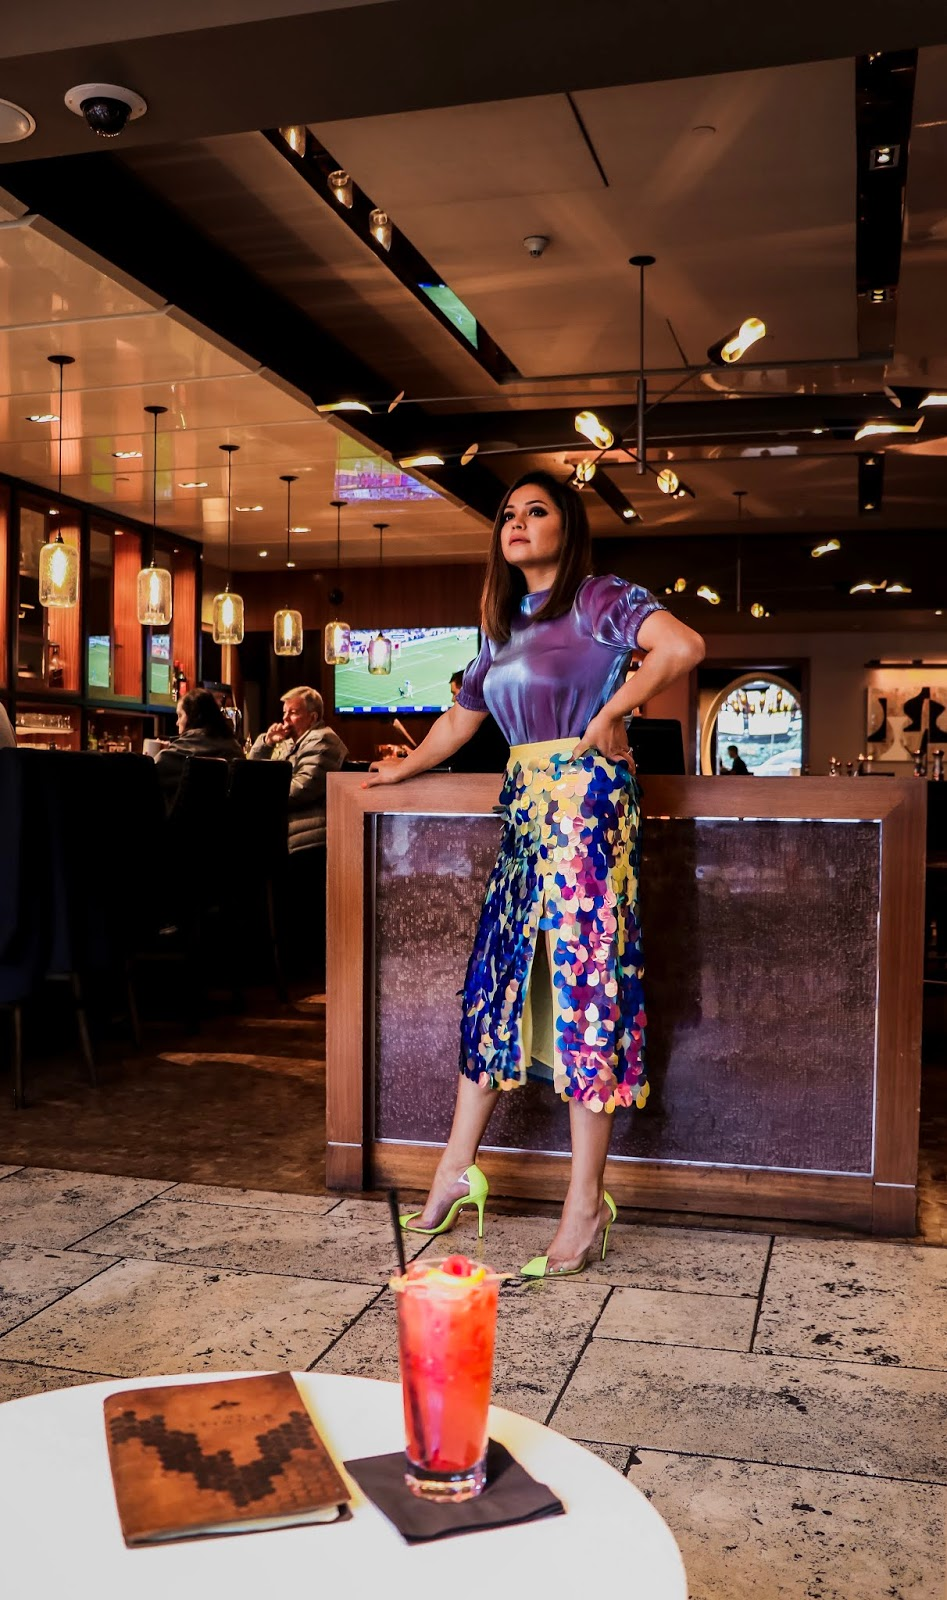 intercontinental times square, travel, food lifestyle, food & lifestyle , travel, NY travel. hotel recommendation in NY, myriad musings, Saumya Shiohare